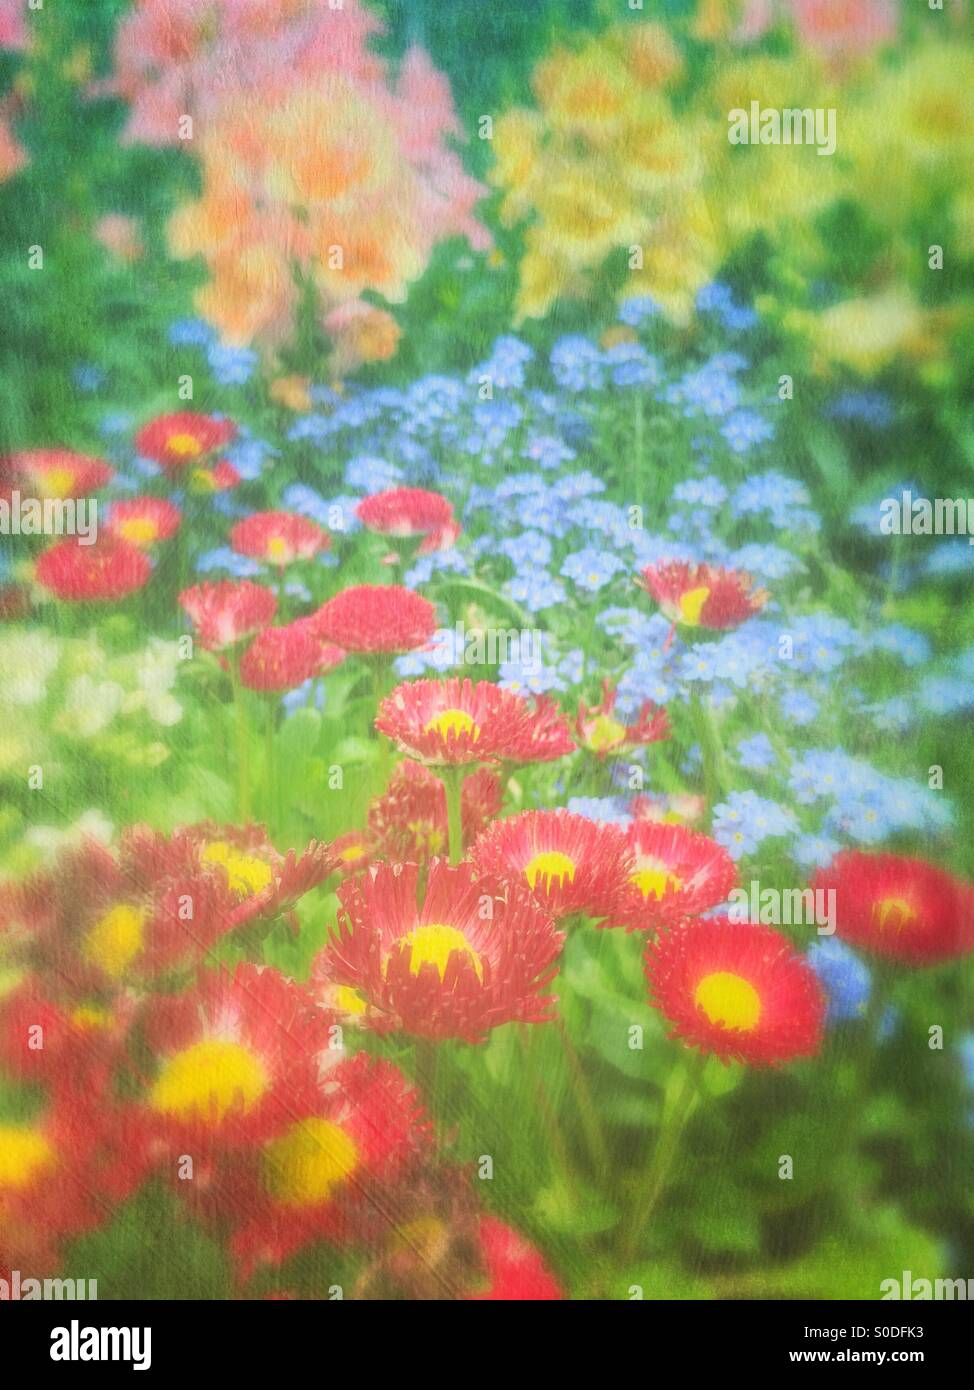 Spring flower garden with red daisies, blue forget-me-nots and yellow, pink and peach snapdragons. Vintage painterlyStock Photo